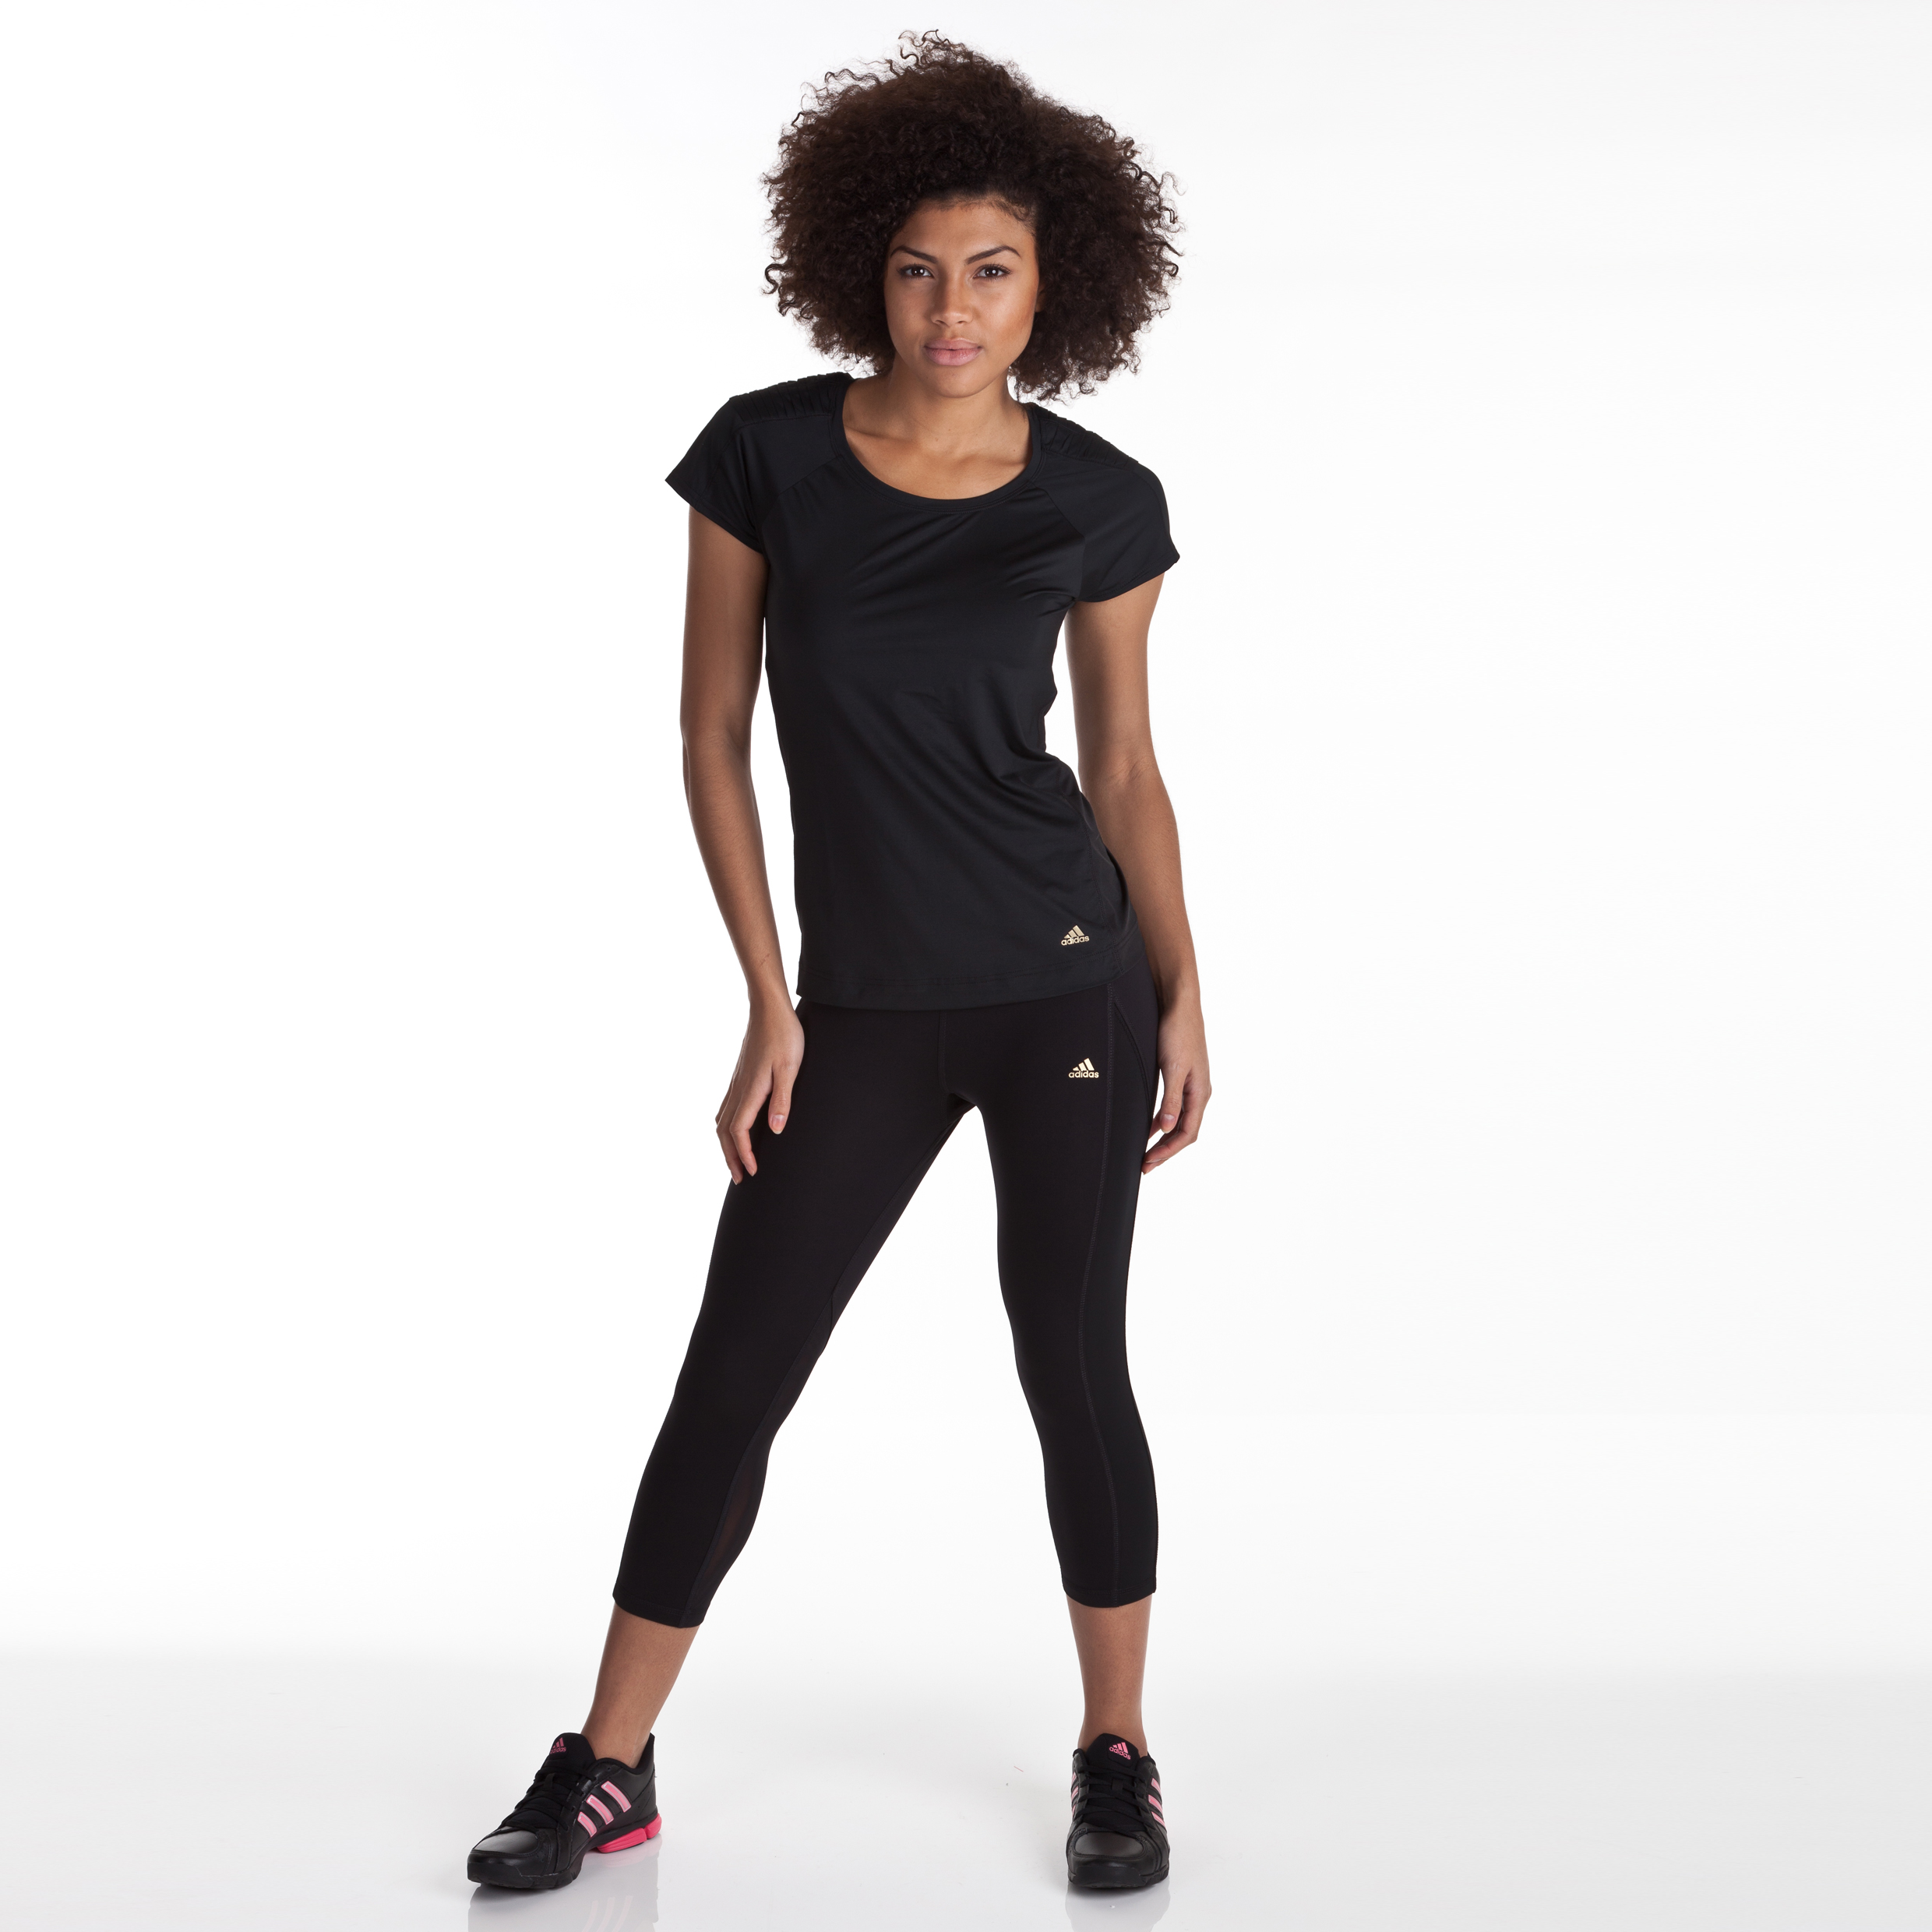 Adidas Studio Power 3/4 Tight - Black - Women